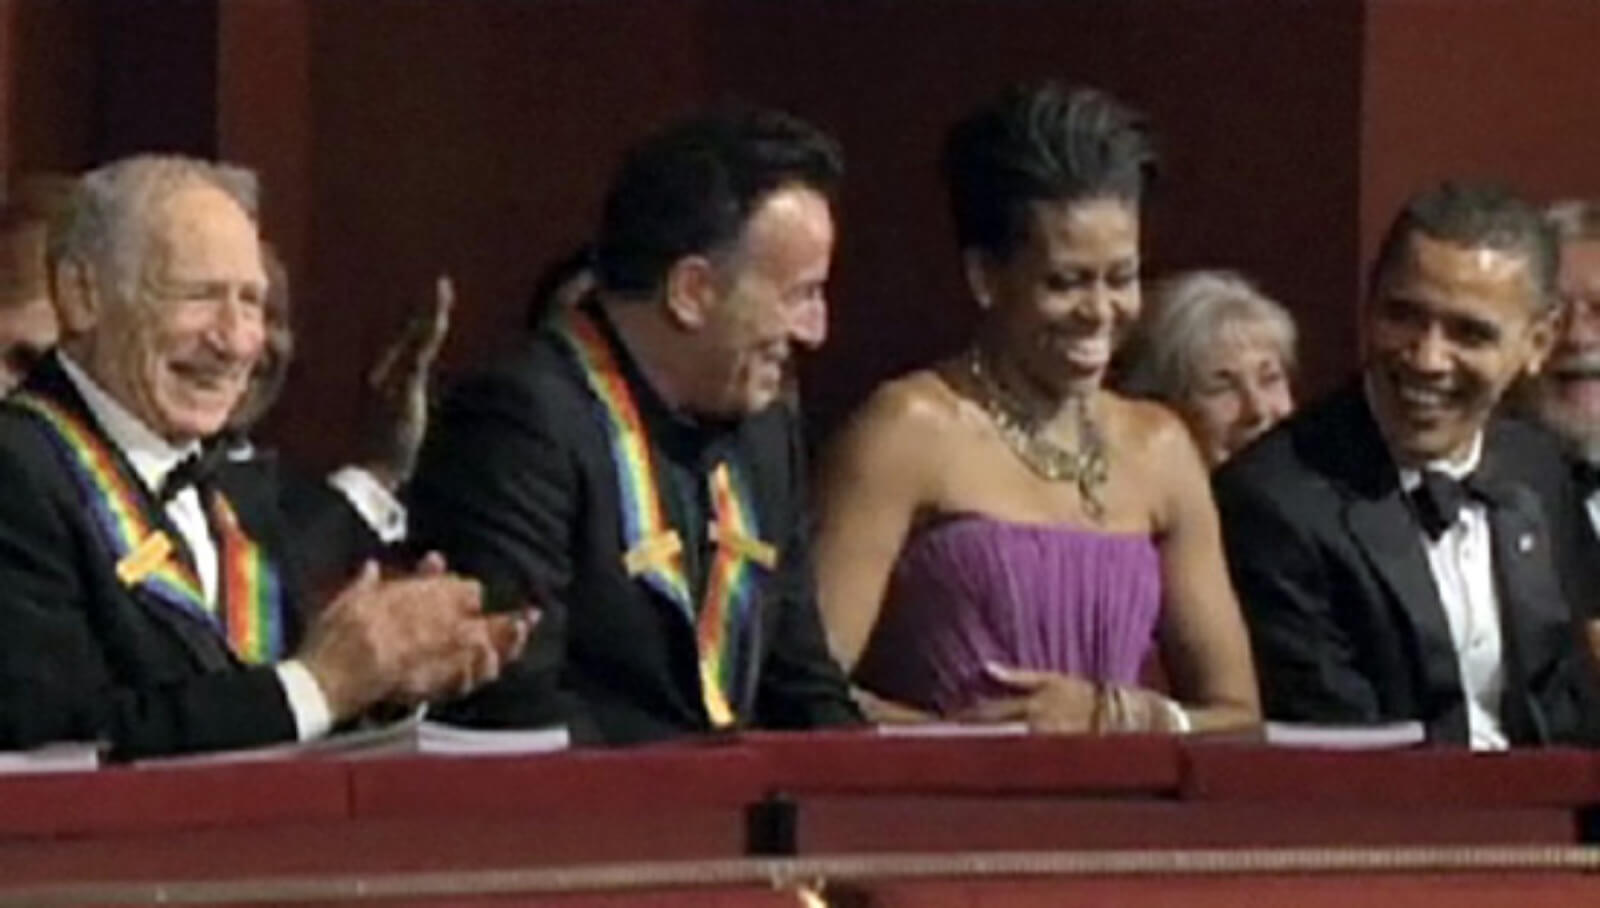 Mel Brooks, Bruce Springsteen, Michelle Obama, and President Barack Obama in the Presidents box at the Kennedy Center.